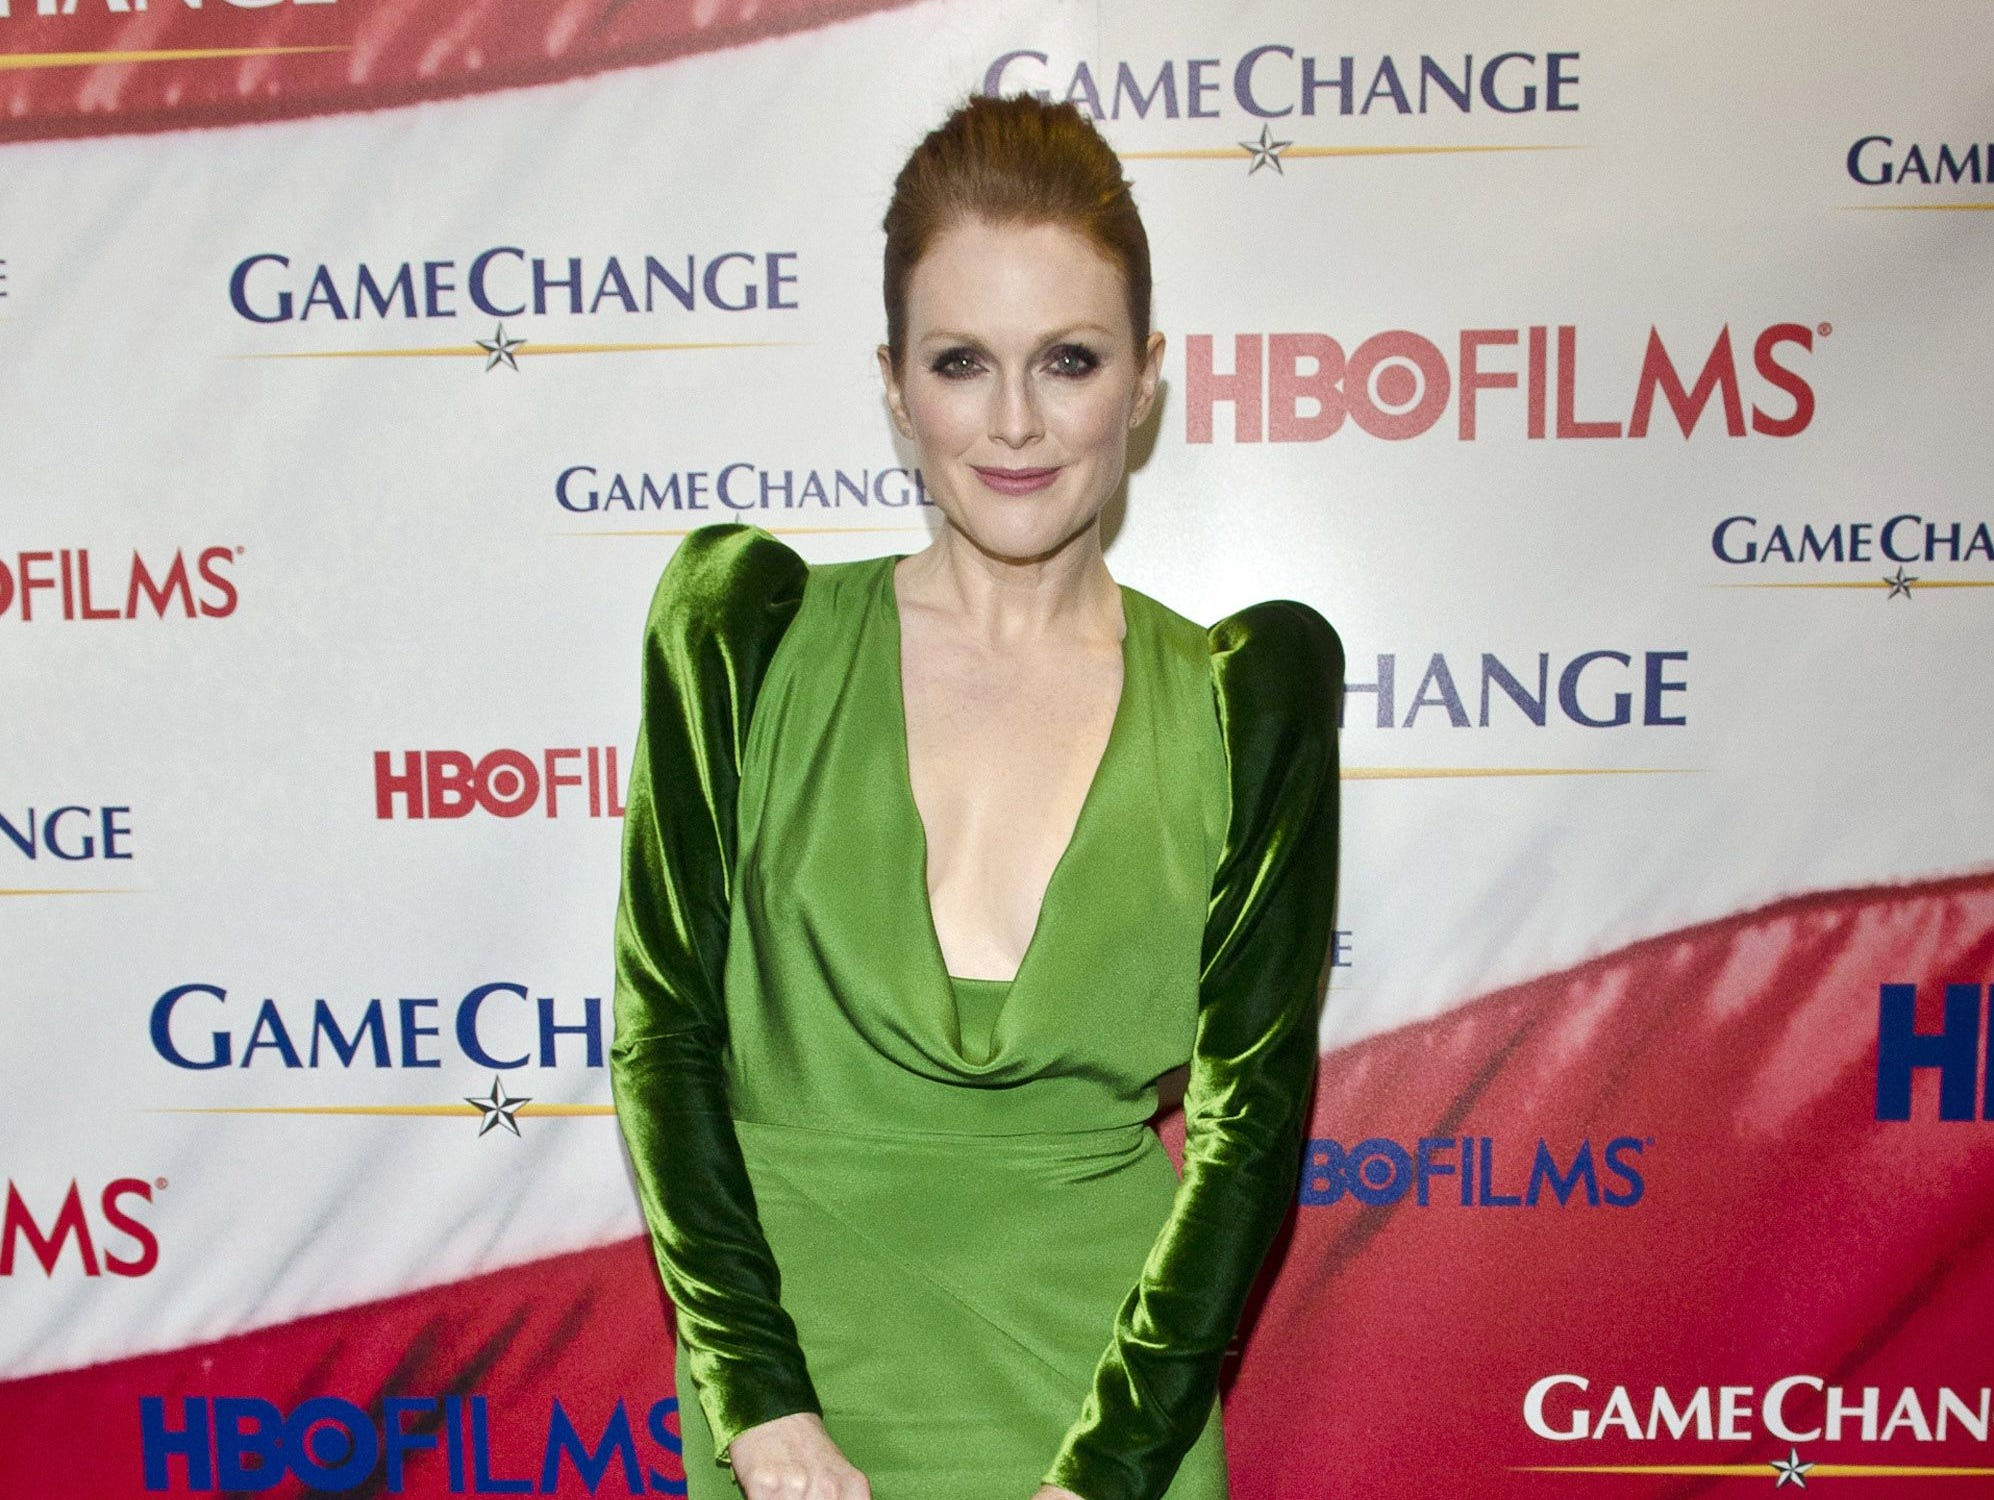 """Julianne Moore poses on the red carpet, wearing Tom Ford during the """"Game Change"""" premiere at The Newseum on March 8, 2012, in Washington, DC."""